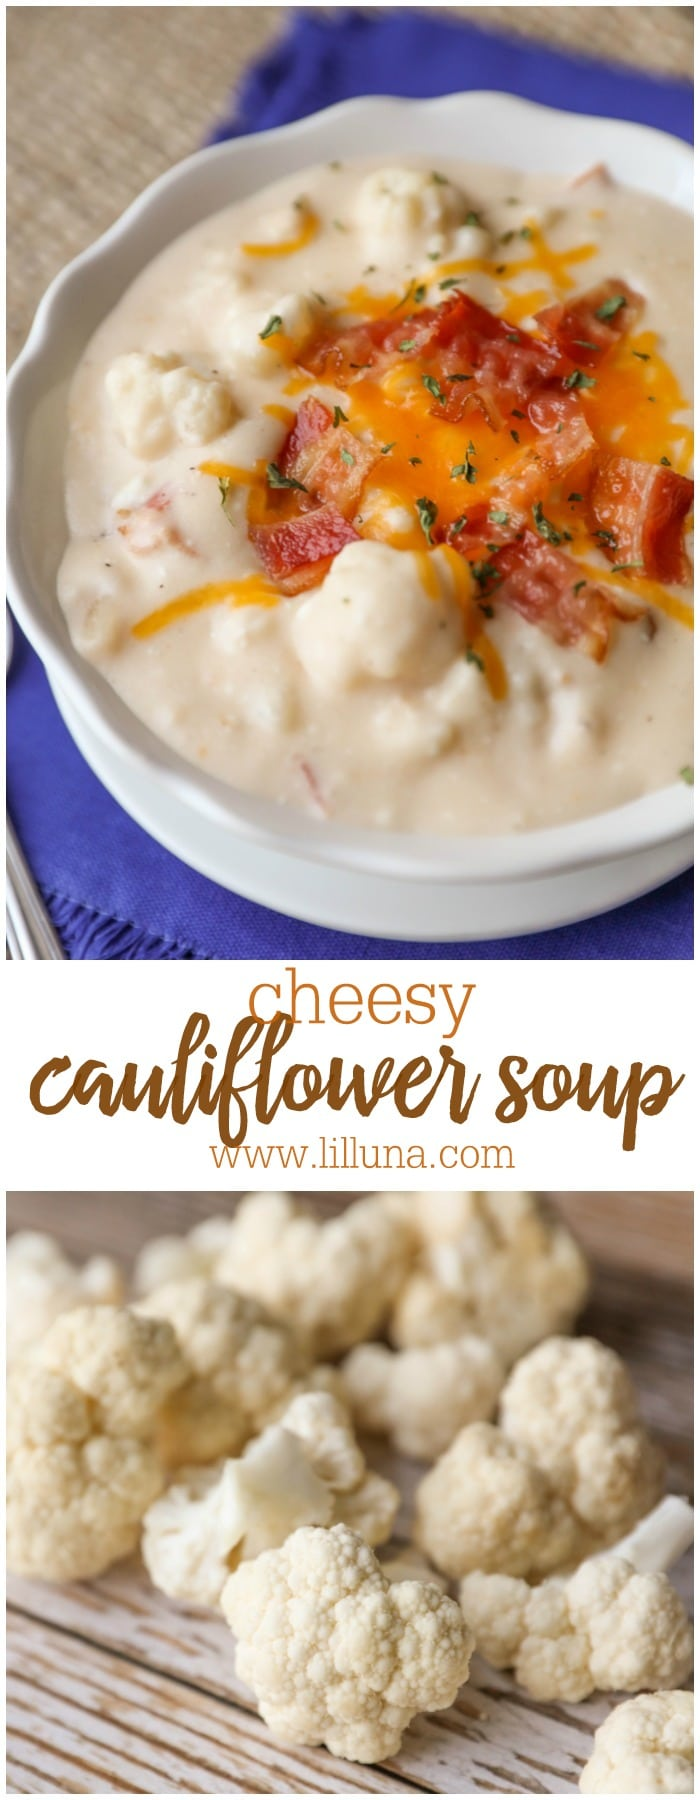 Easy Cauliflower Soup Recipe